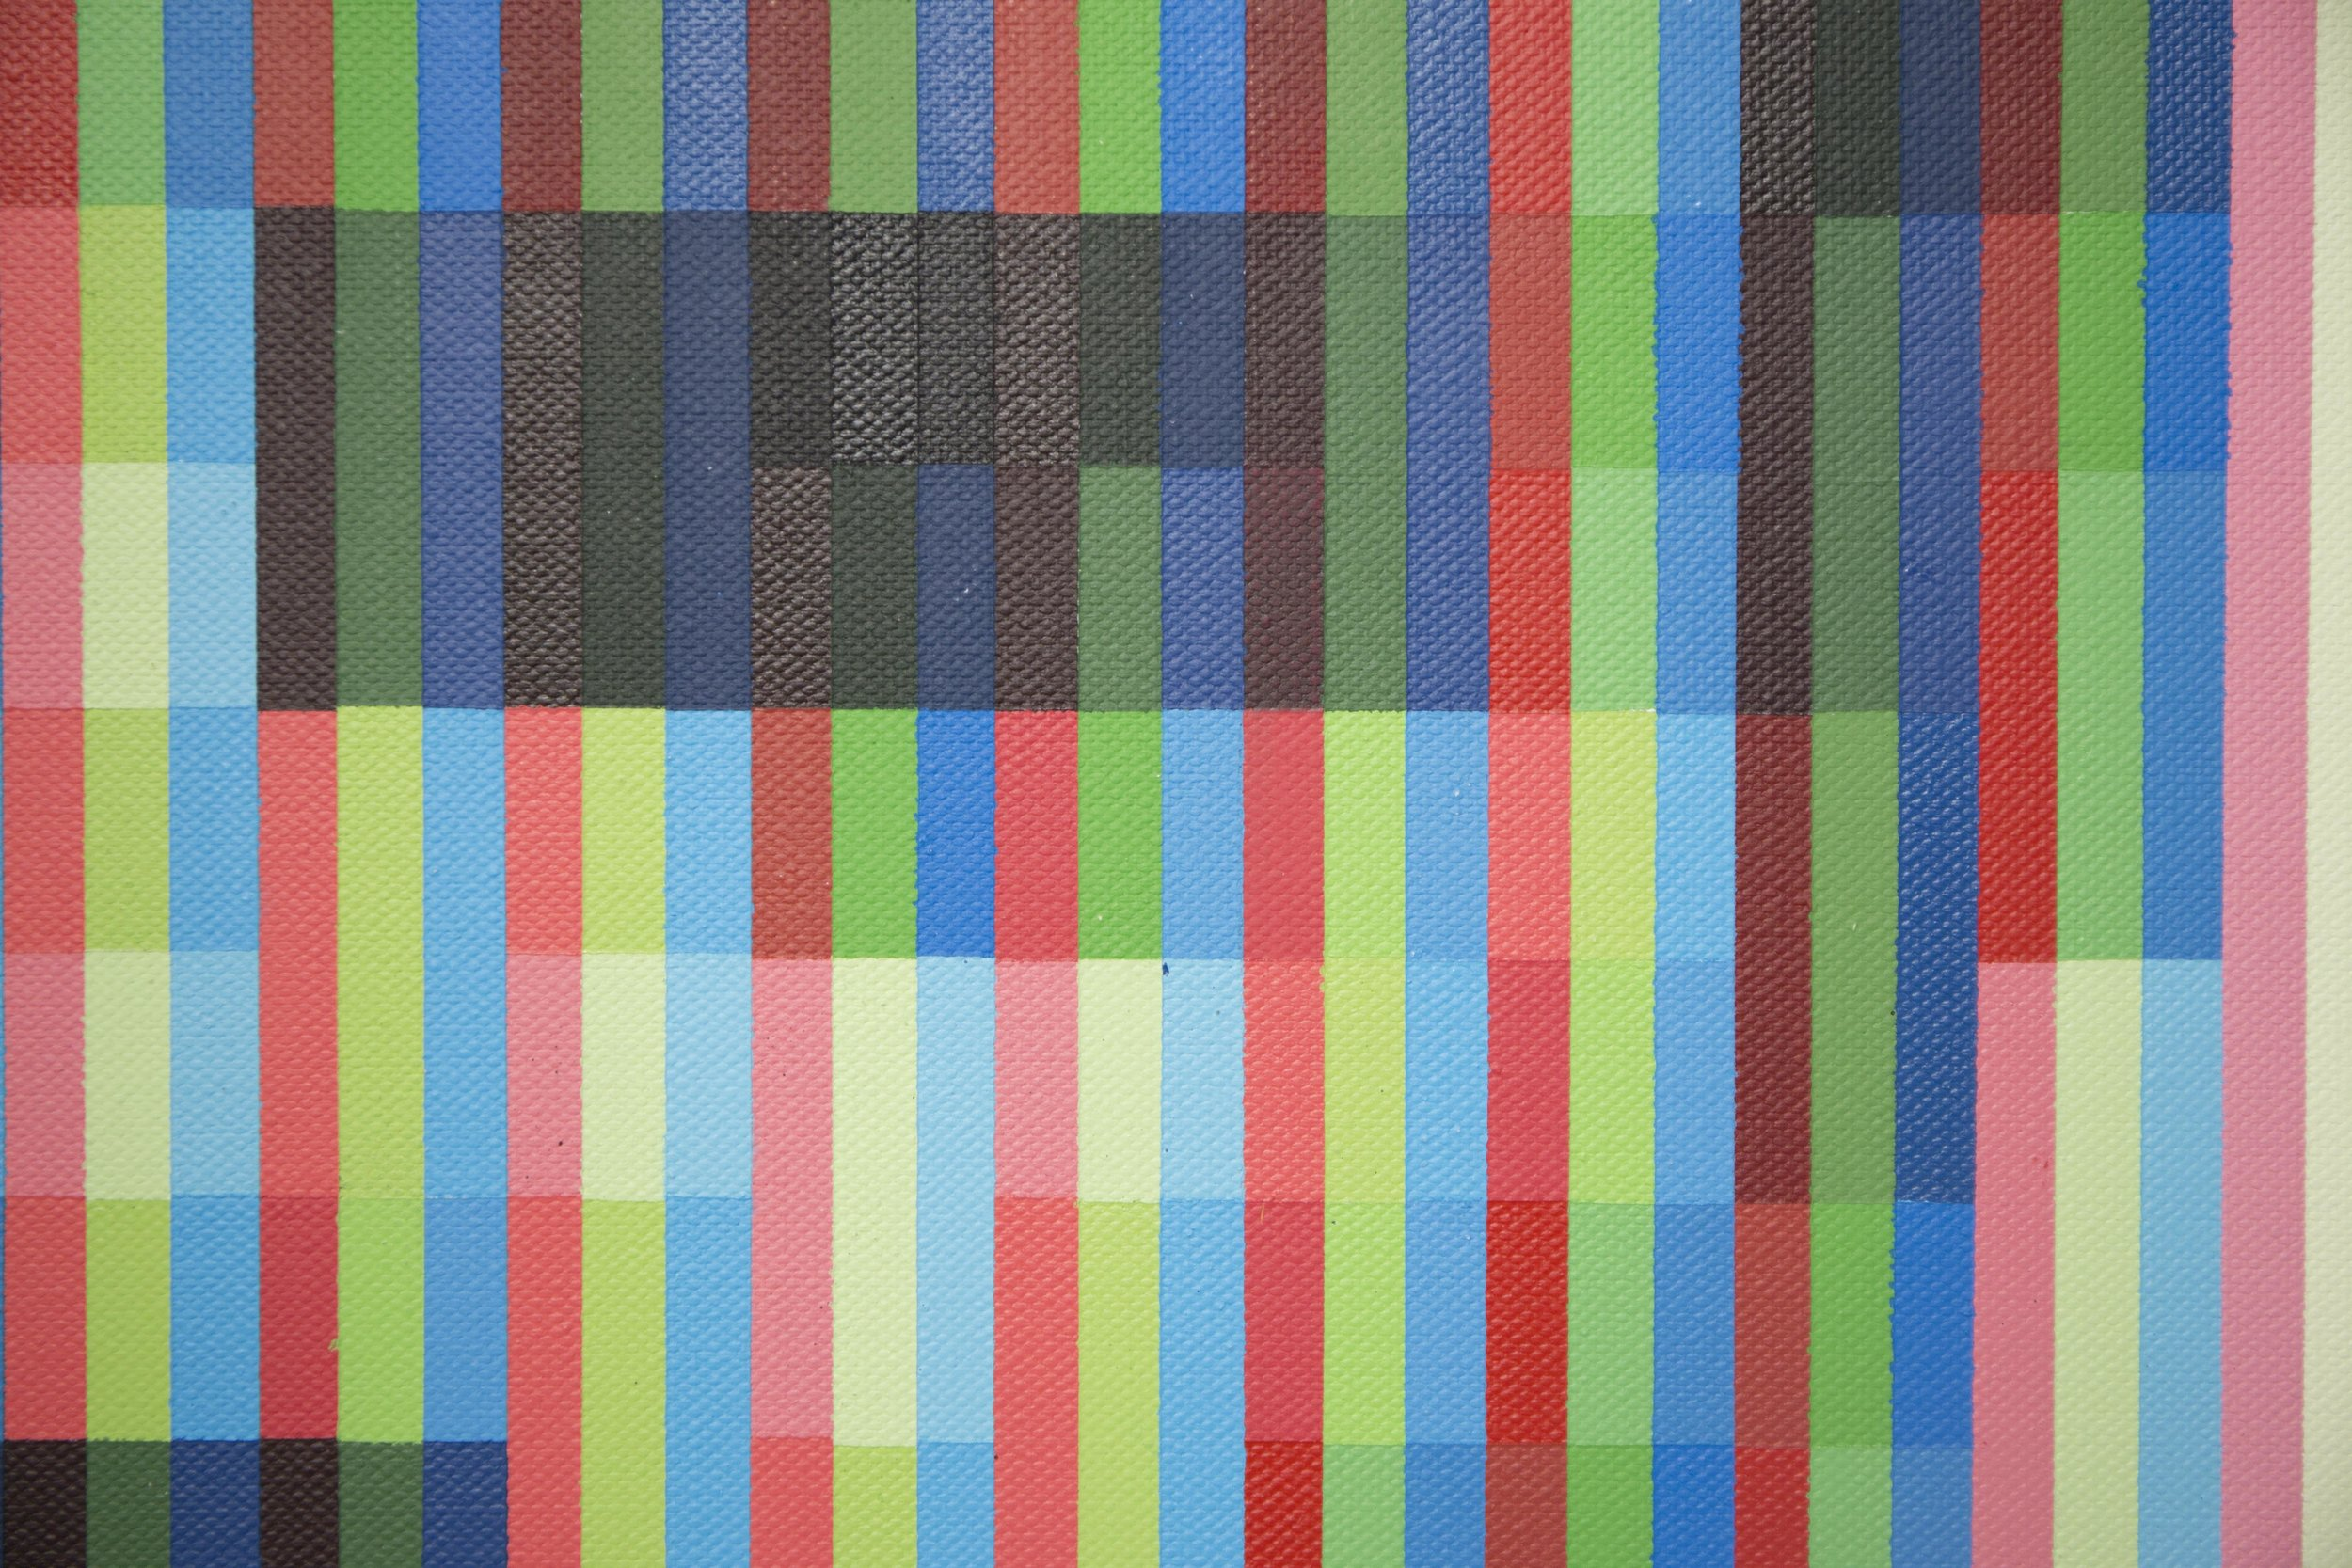 'DI_06' (Detail), 2019, Spray Paint on Canvas, 70 x 100 cm, Atelier Maser.